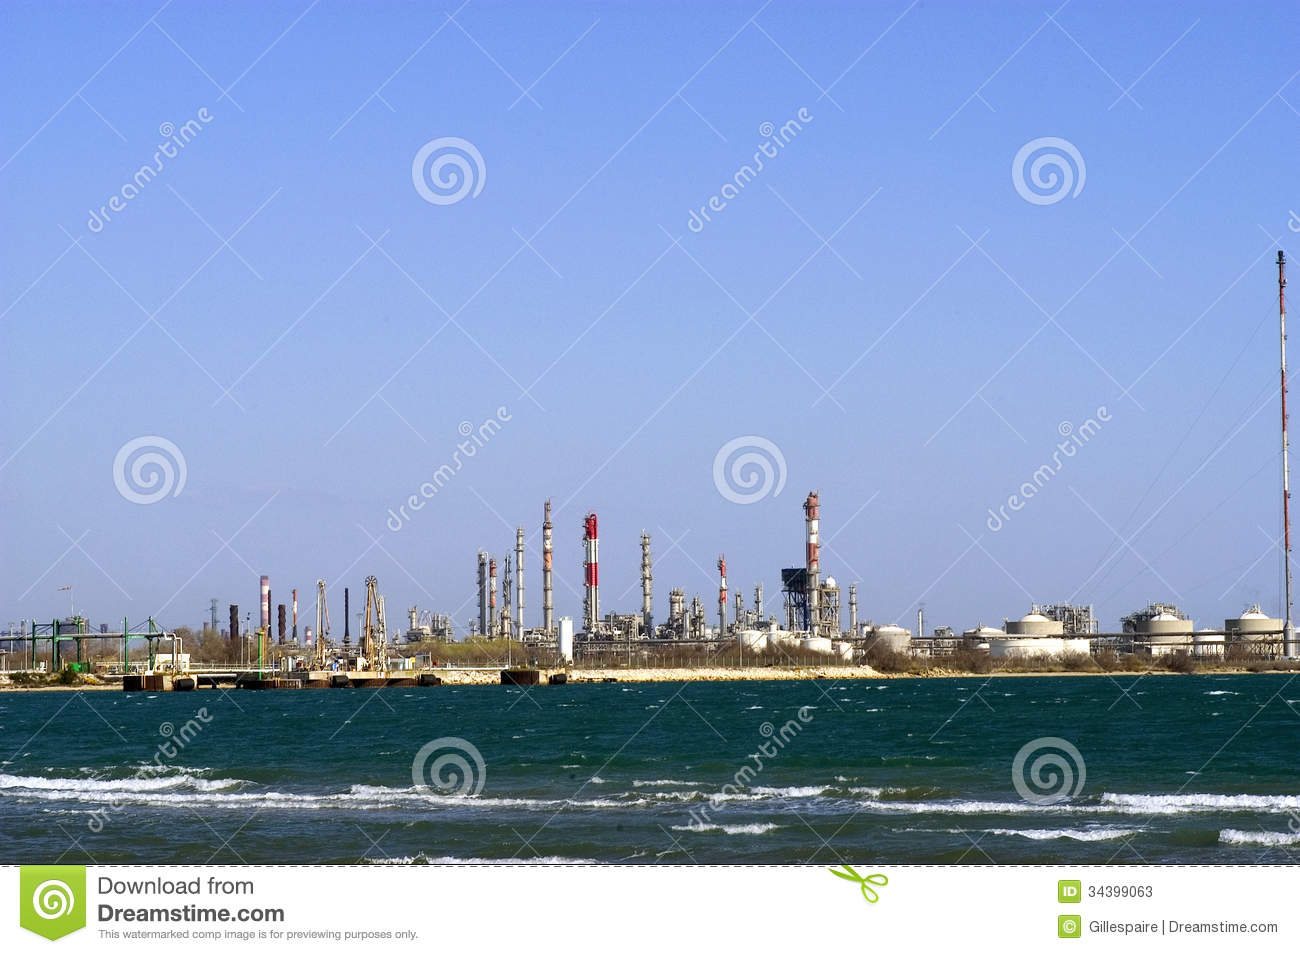 Industry Stock Photos - Image: 34399063